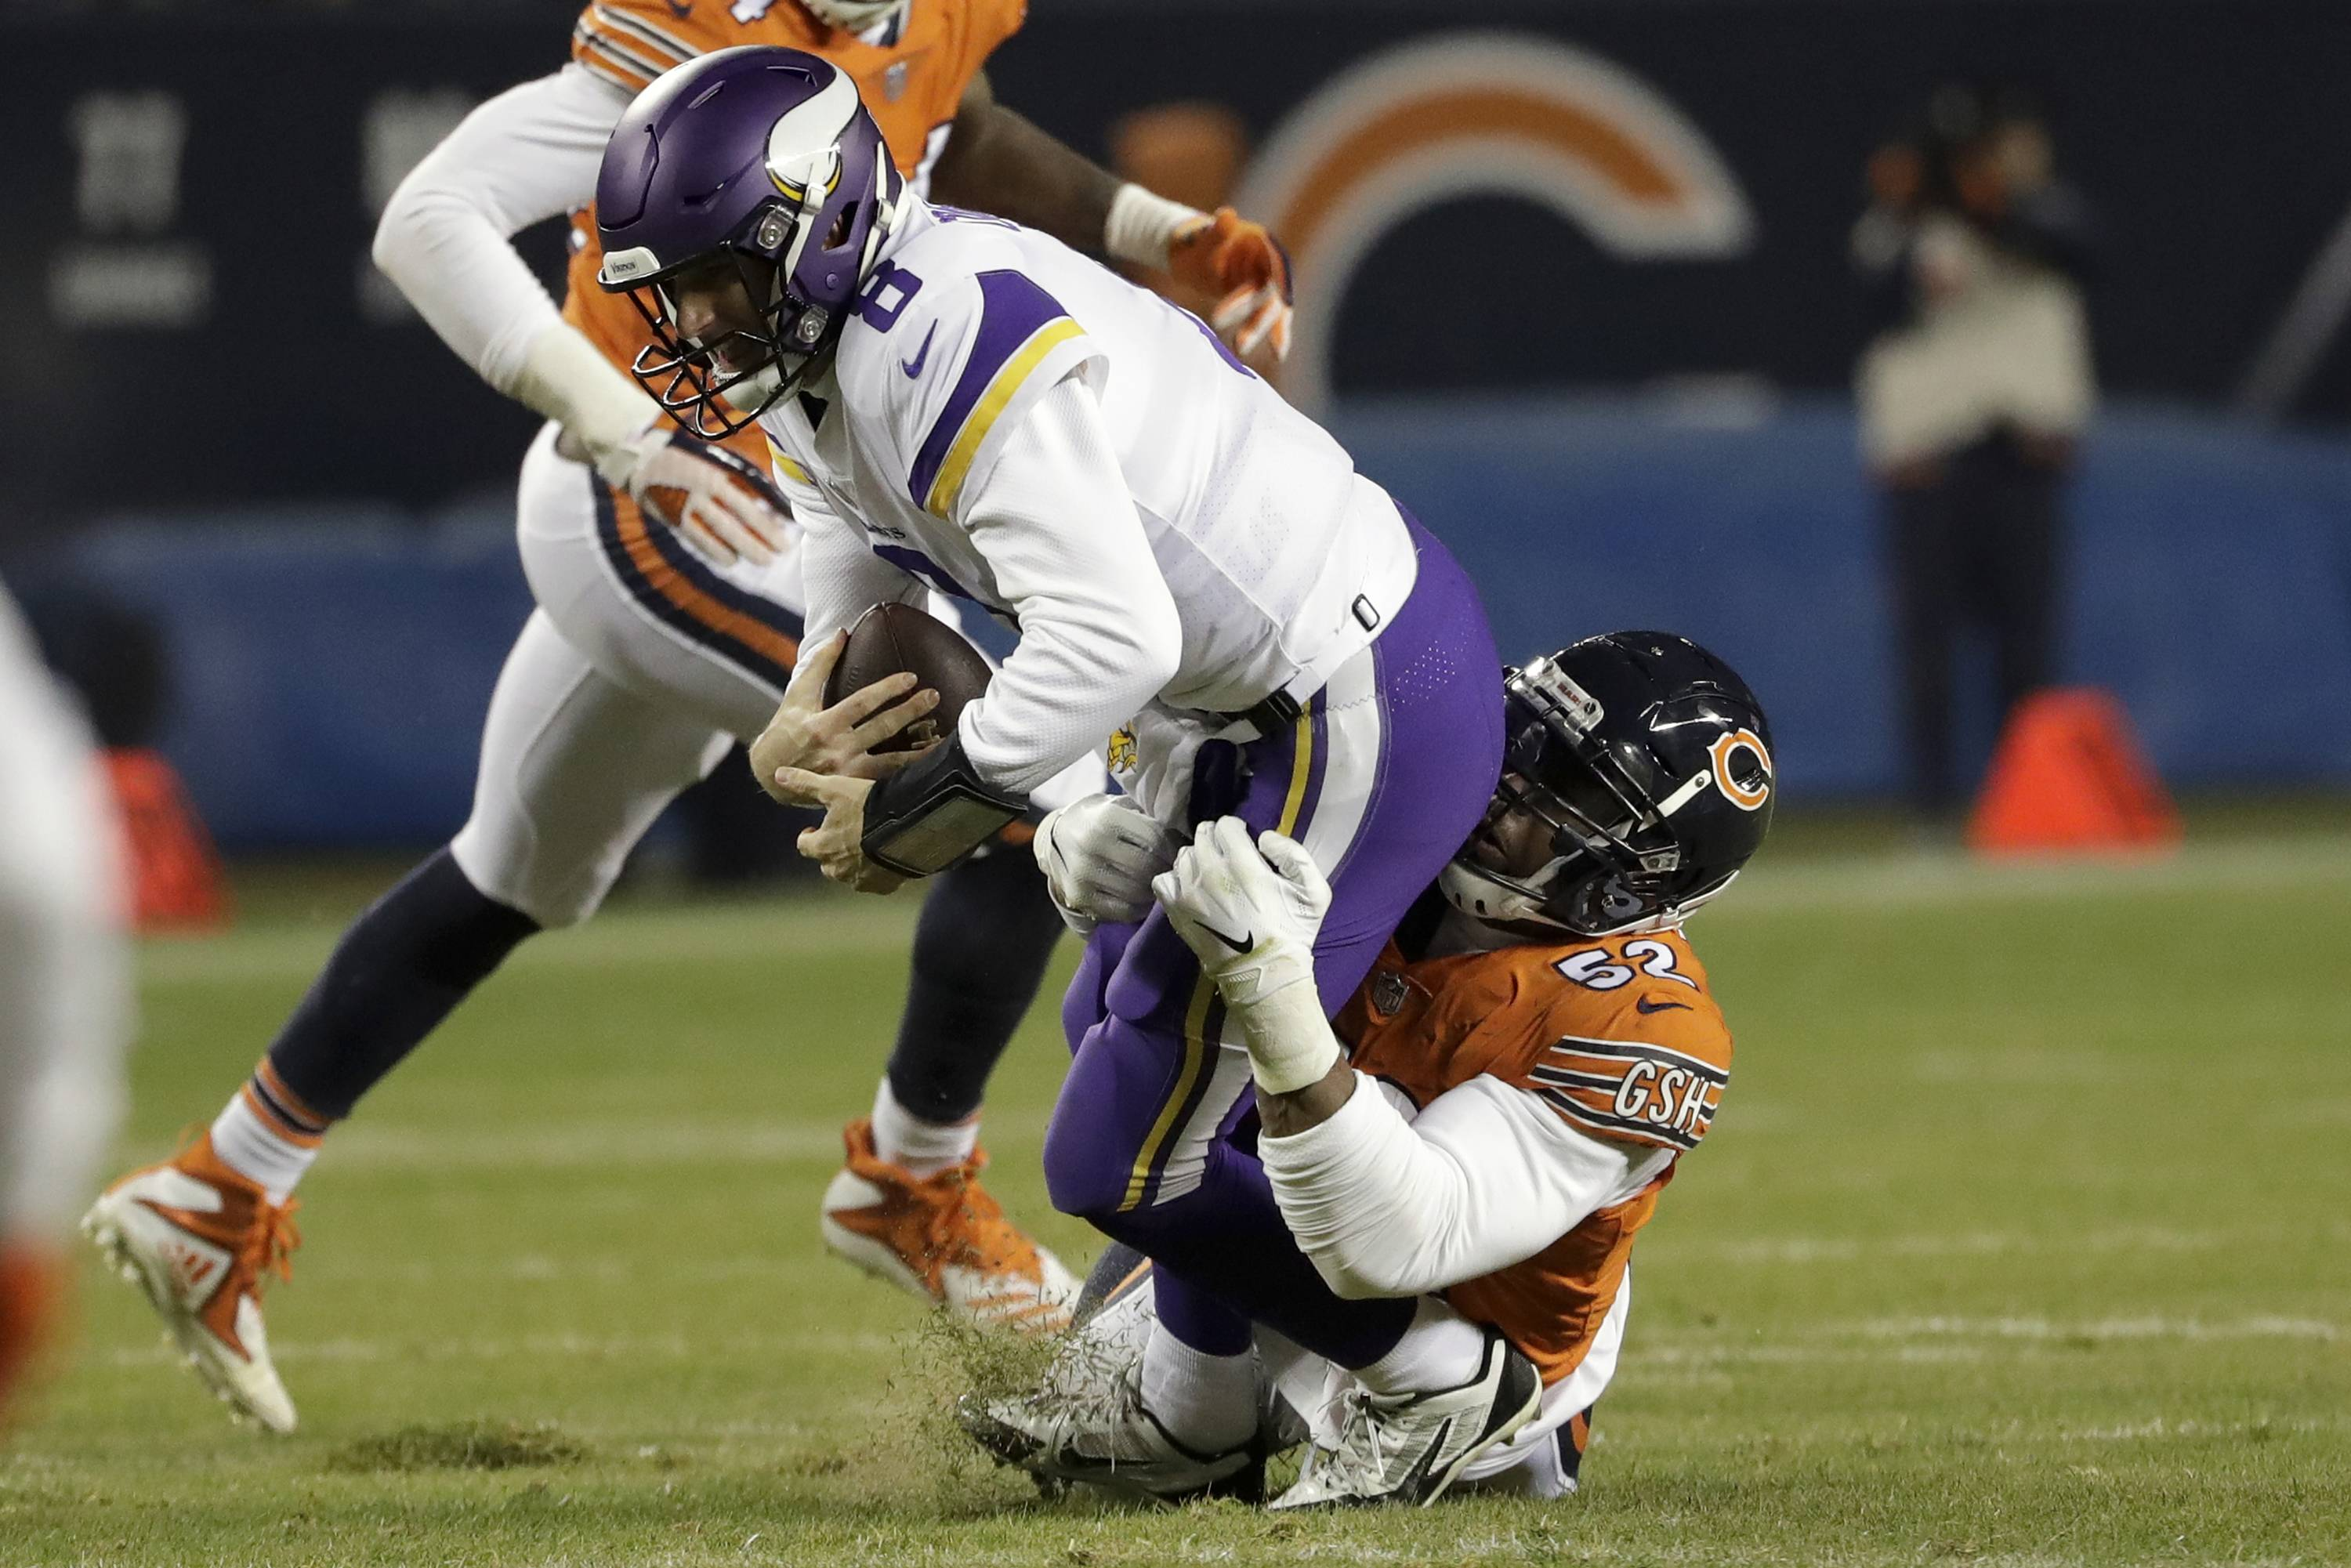 Minnesota Vikings quarterback Kirk Cousins (8) is sacked by Chicago Bears outside linebacker Khalil Mack (52) during the second half of an NFL football game Sunday, Nov. 18, 2018, in Chicago.